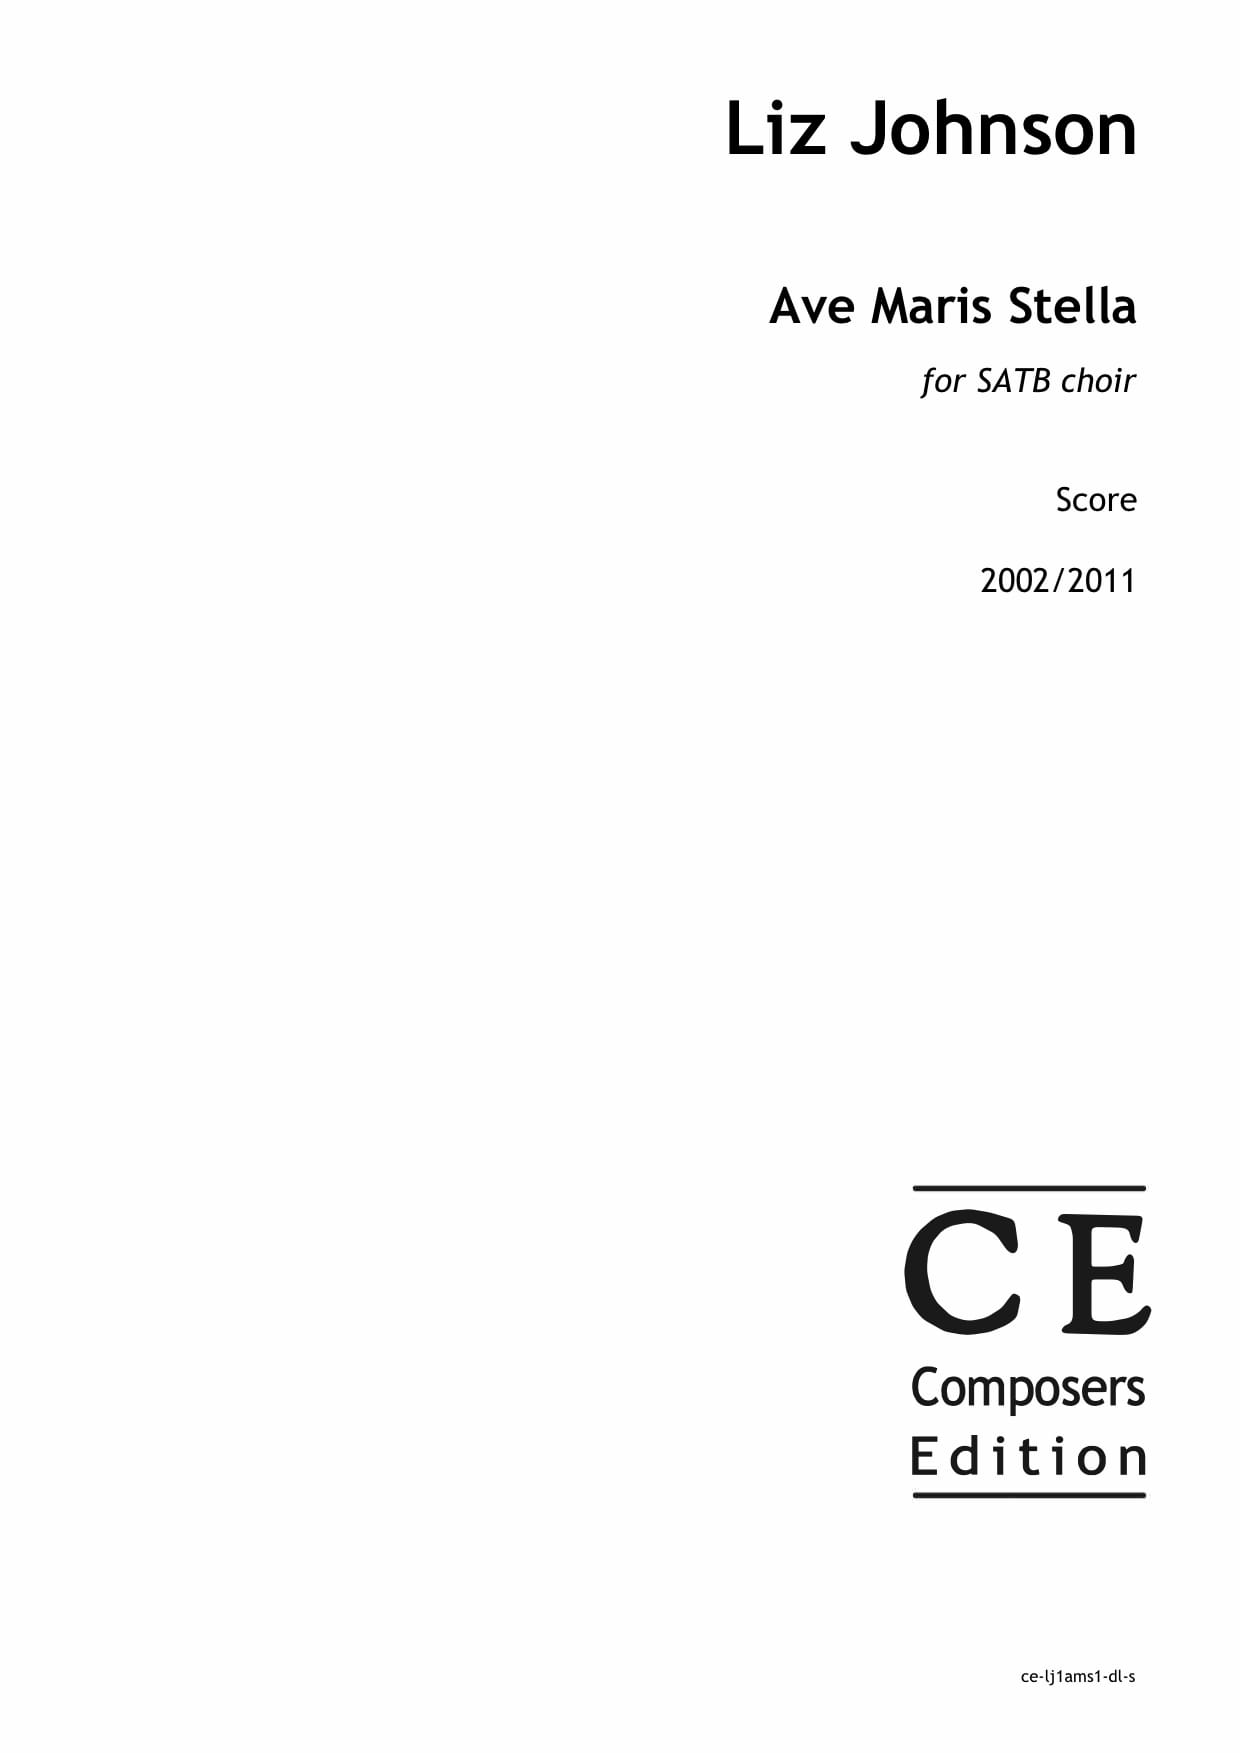 Liz Johnson: Ave Maris Stella for SATB choir